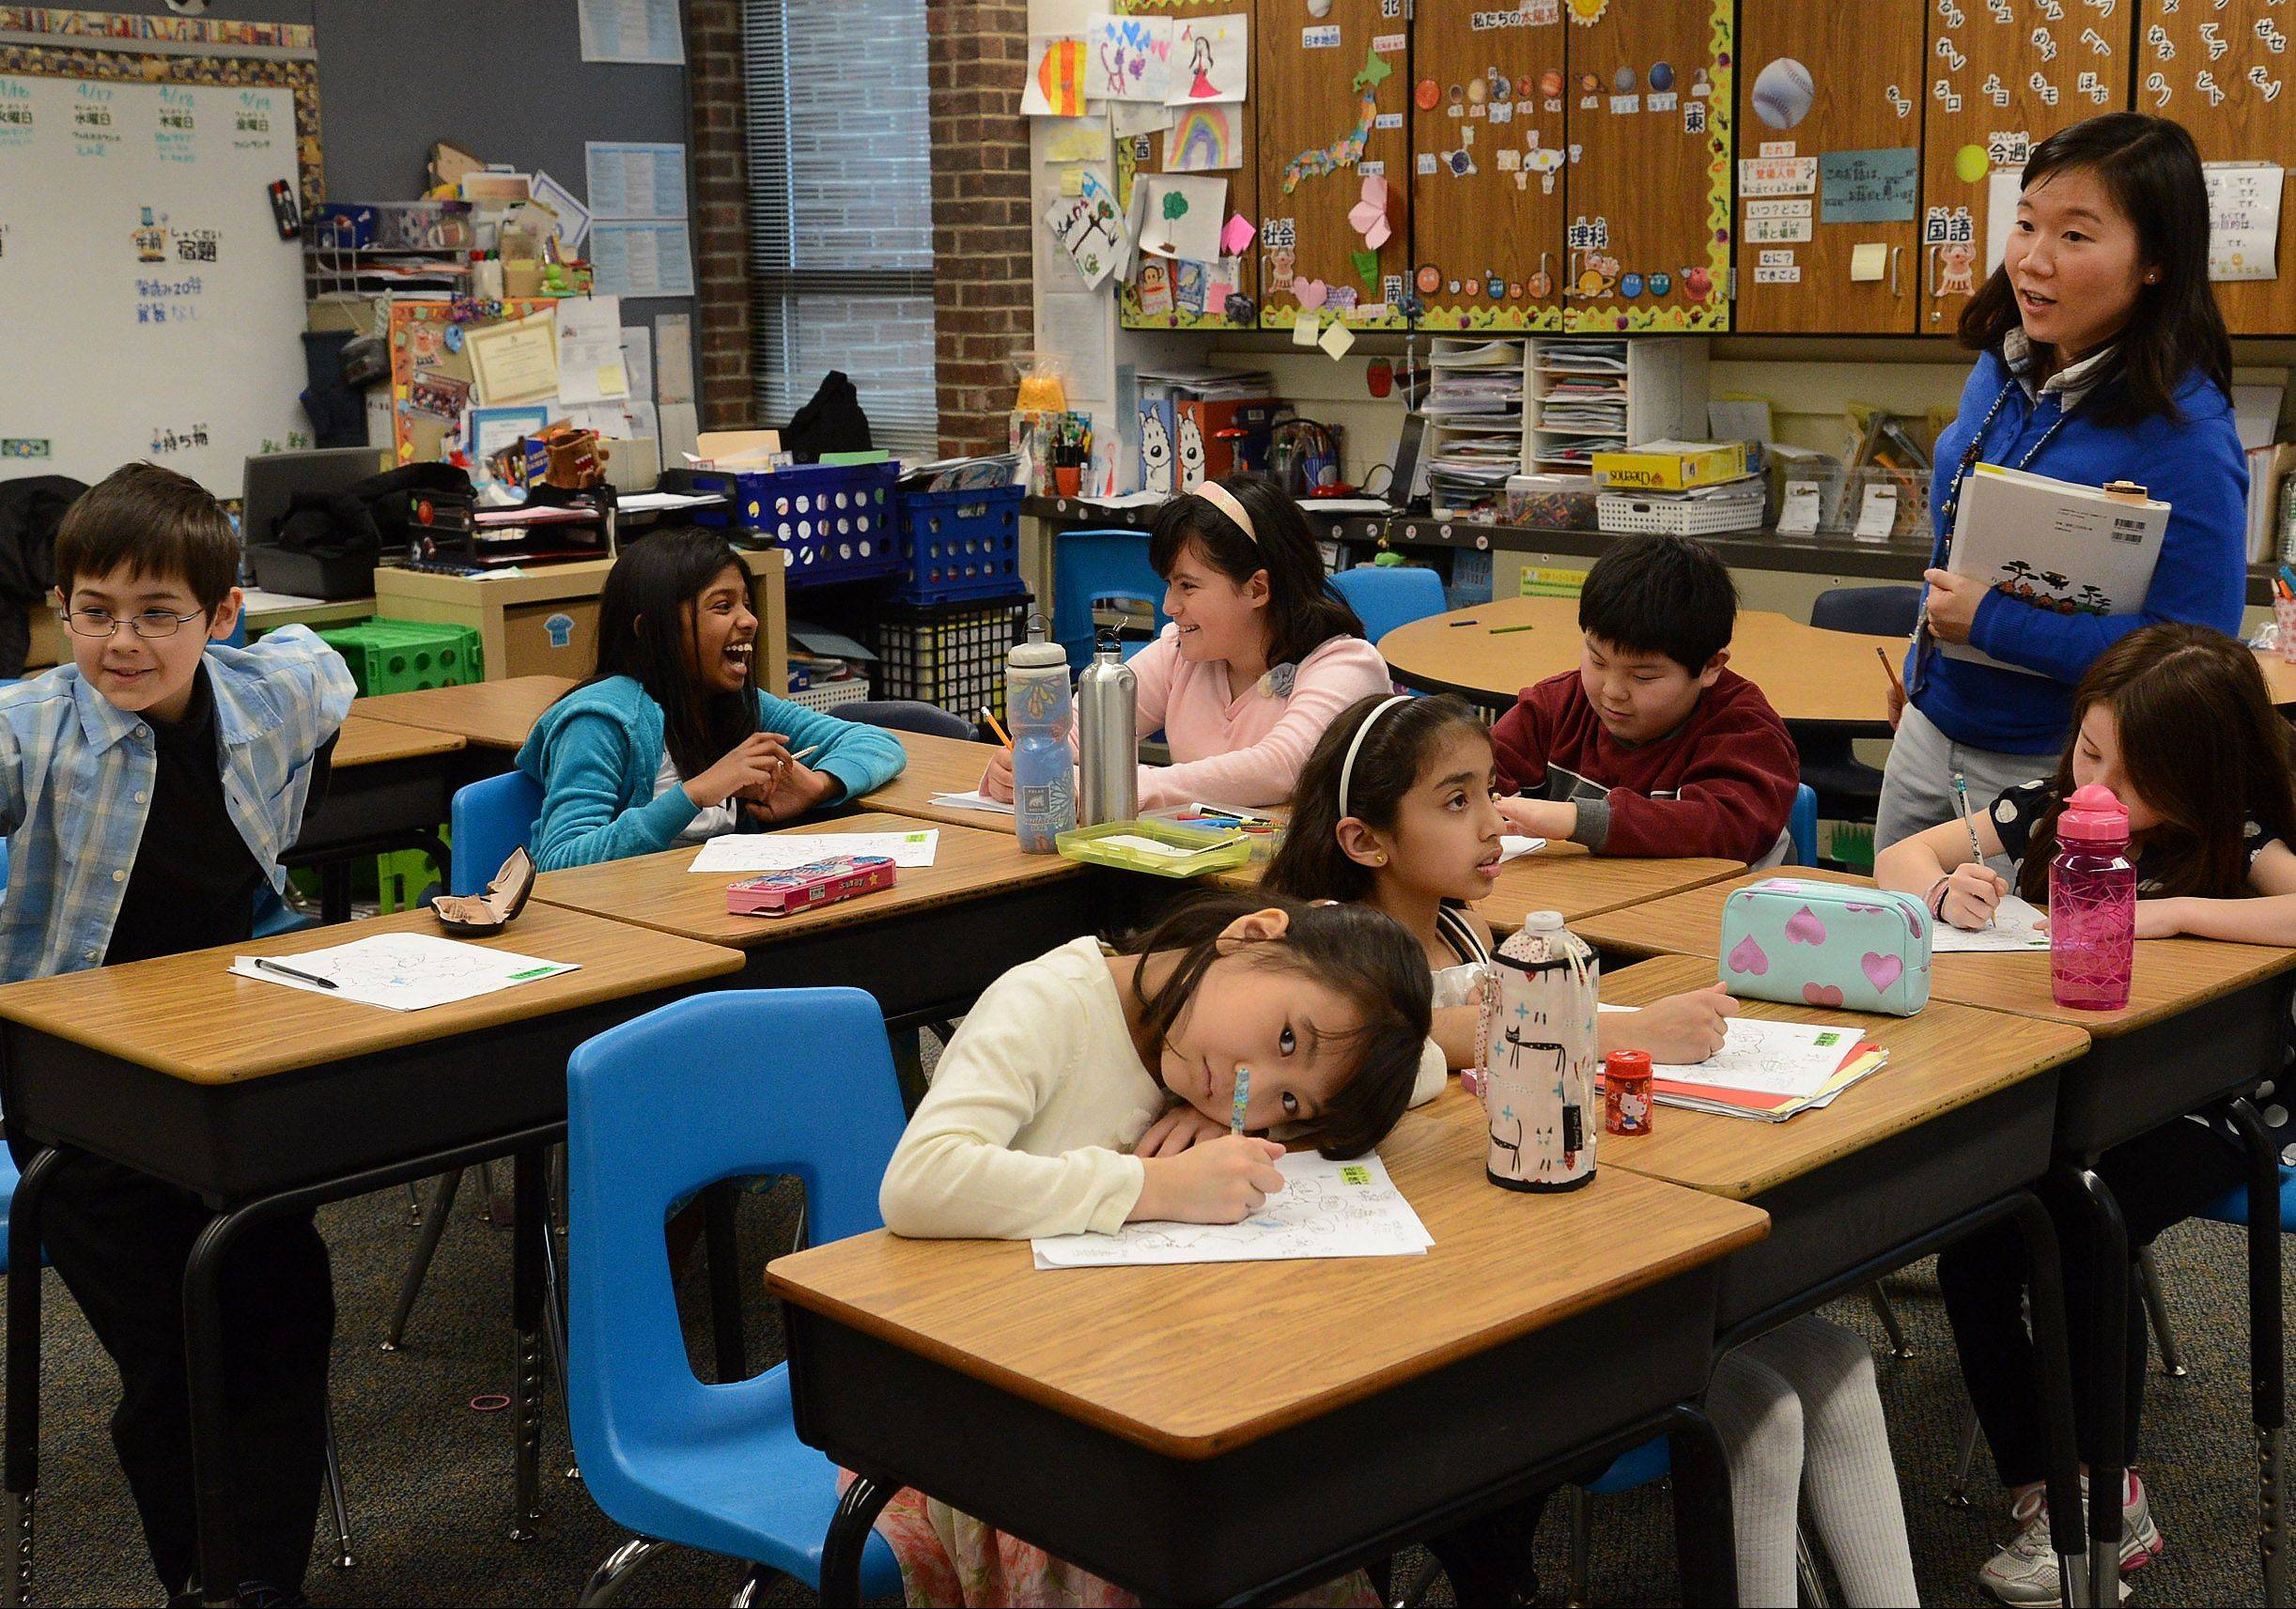 Sachi Takahashi teaches a class of third-graders in Dooley Elementary School's dual language program in Schaumburg, which offers Japanese- and English-speaking students the opportunity to become biliterate, bilingual and bicultural.